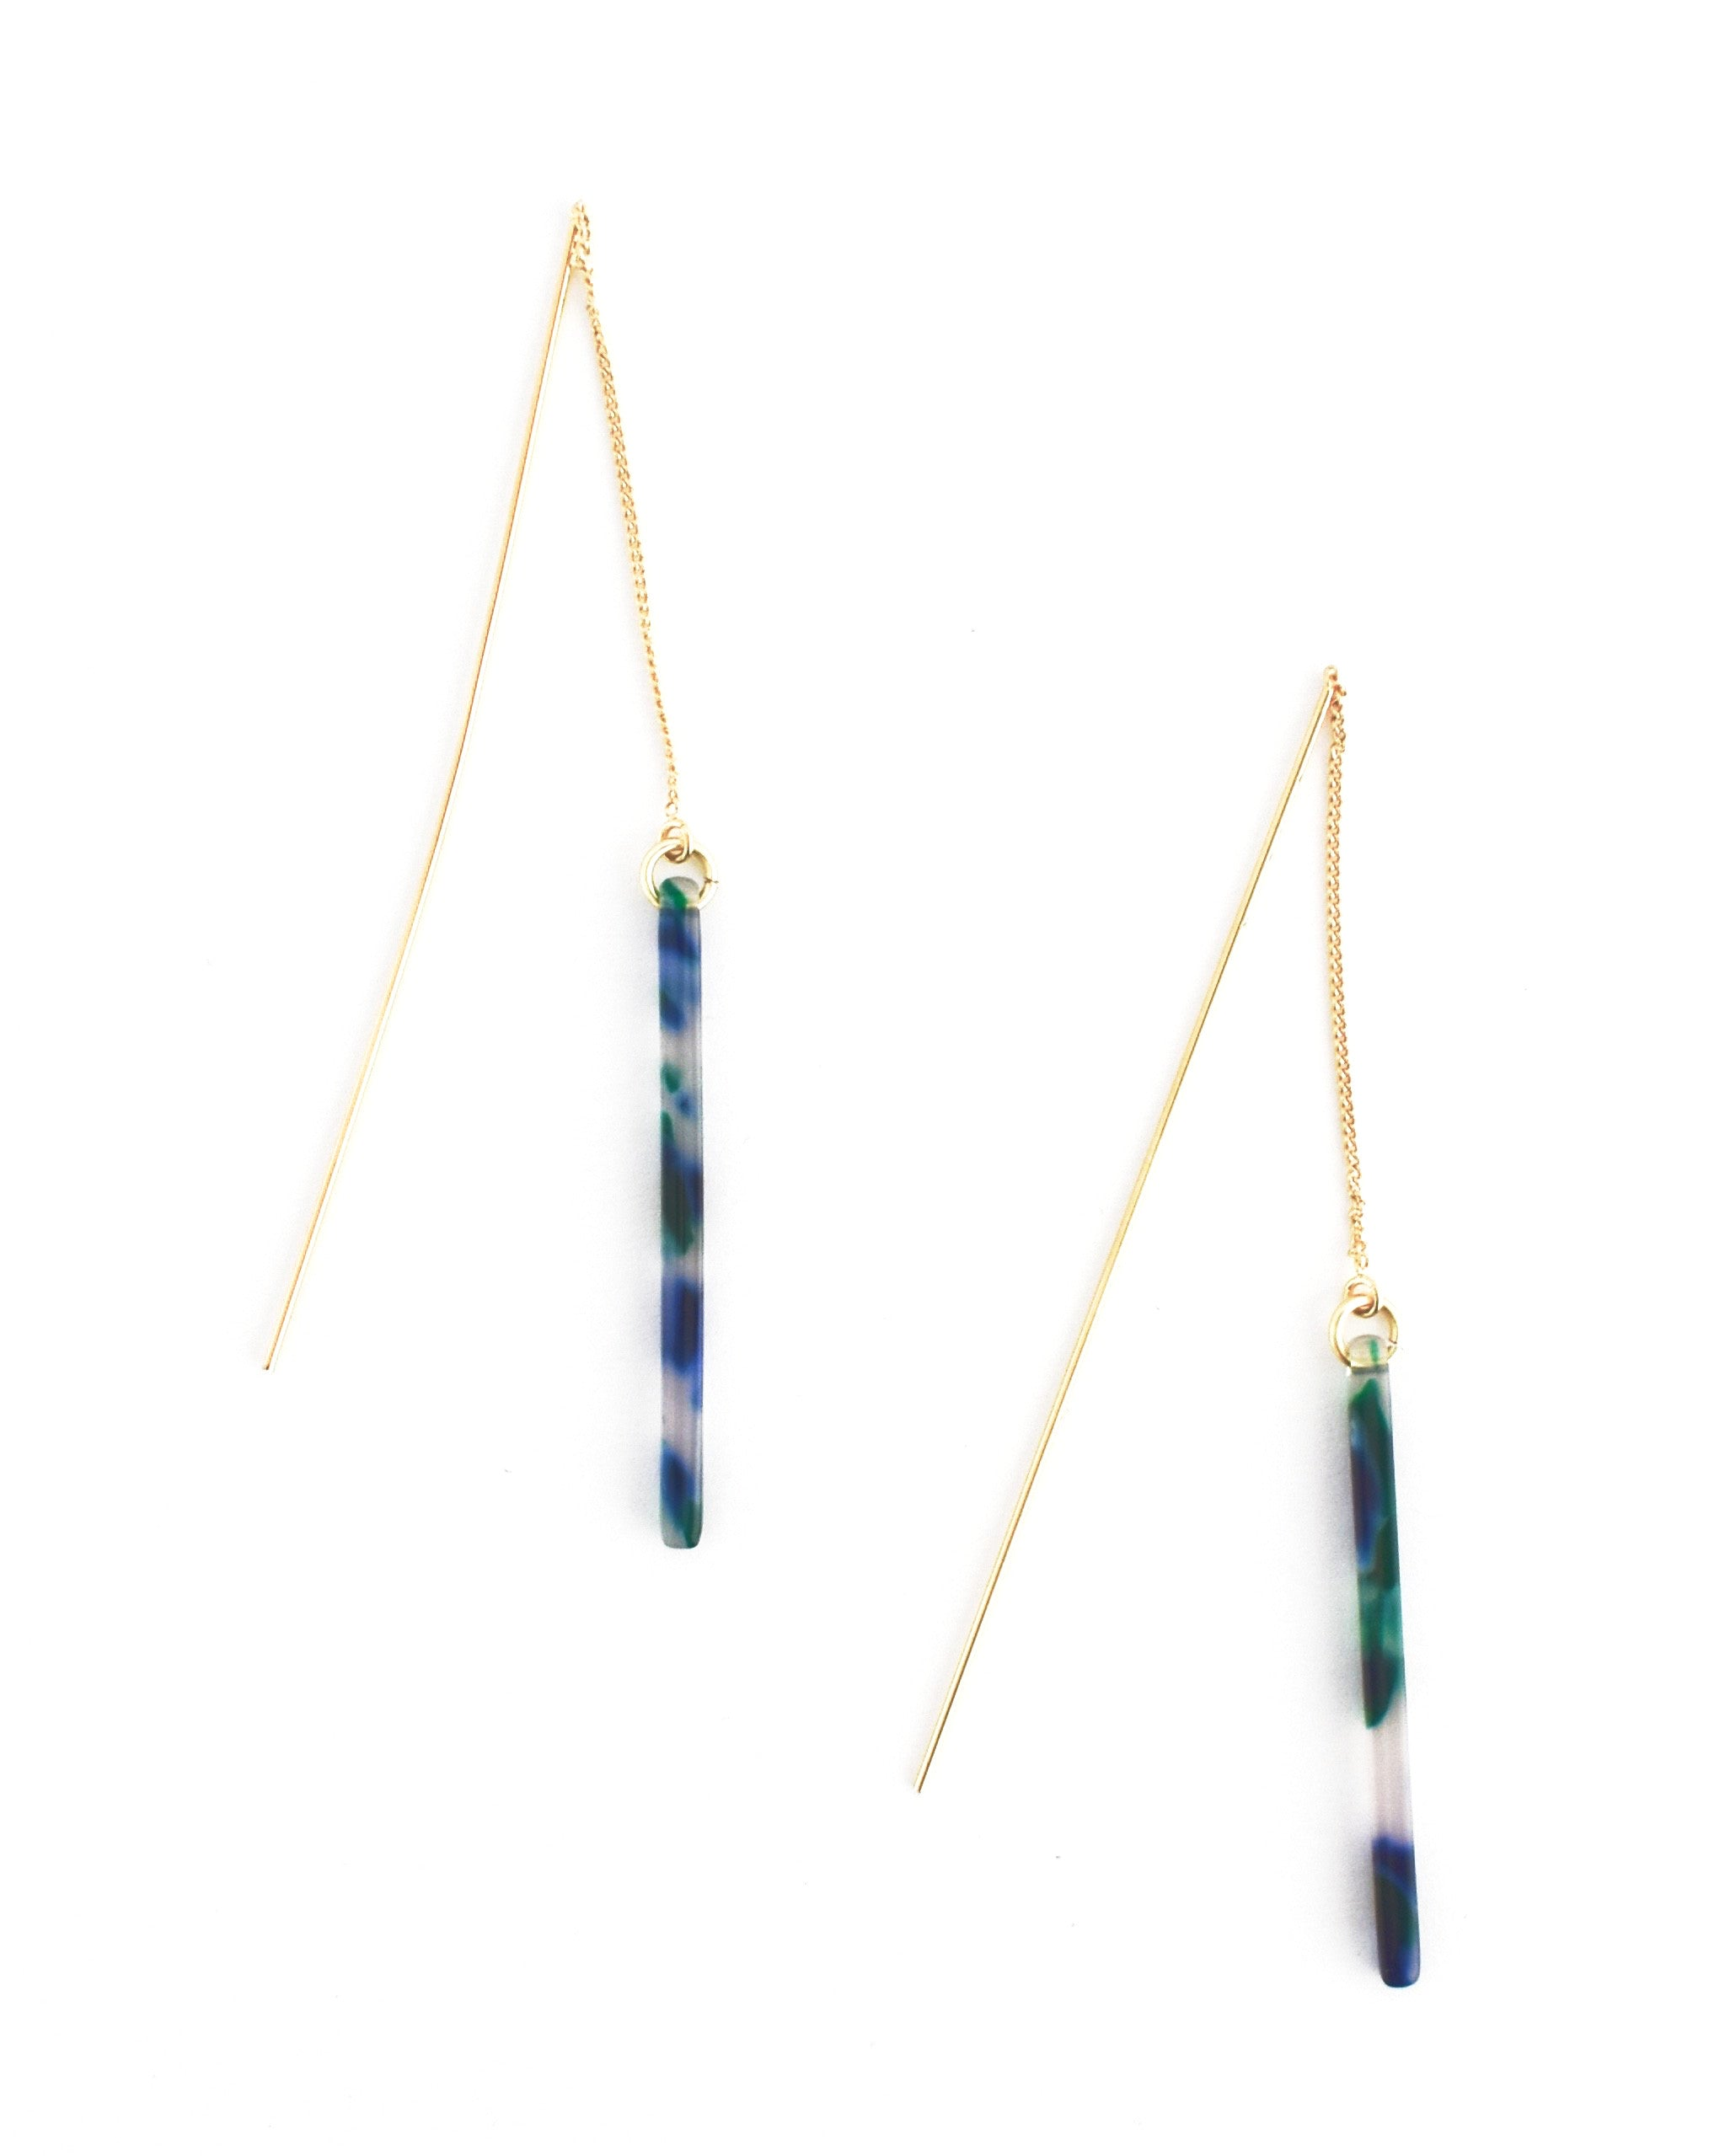 Evette Earrings || Choose Earrings